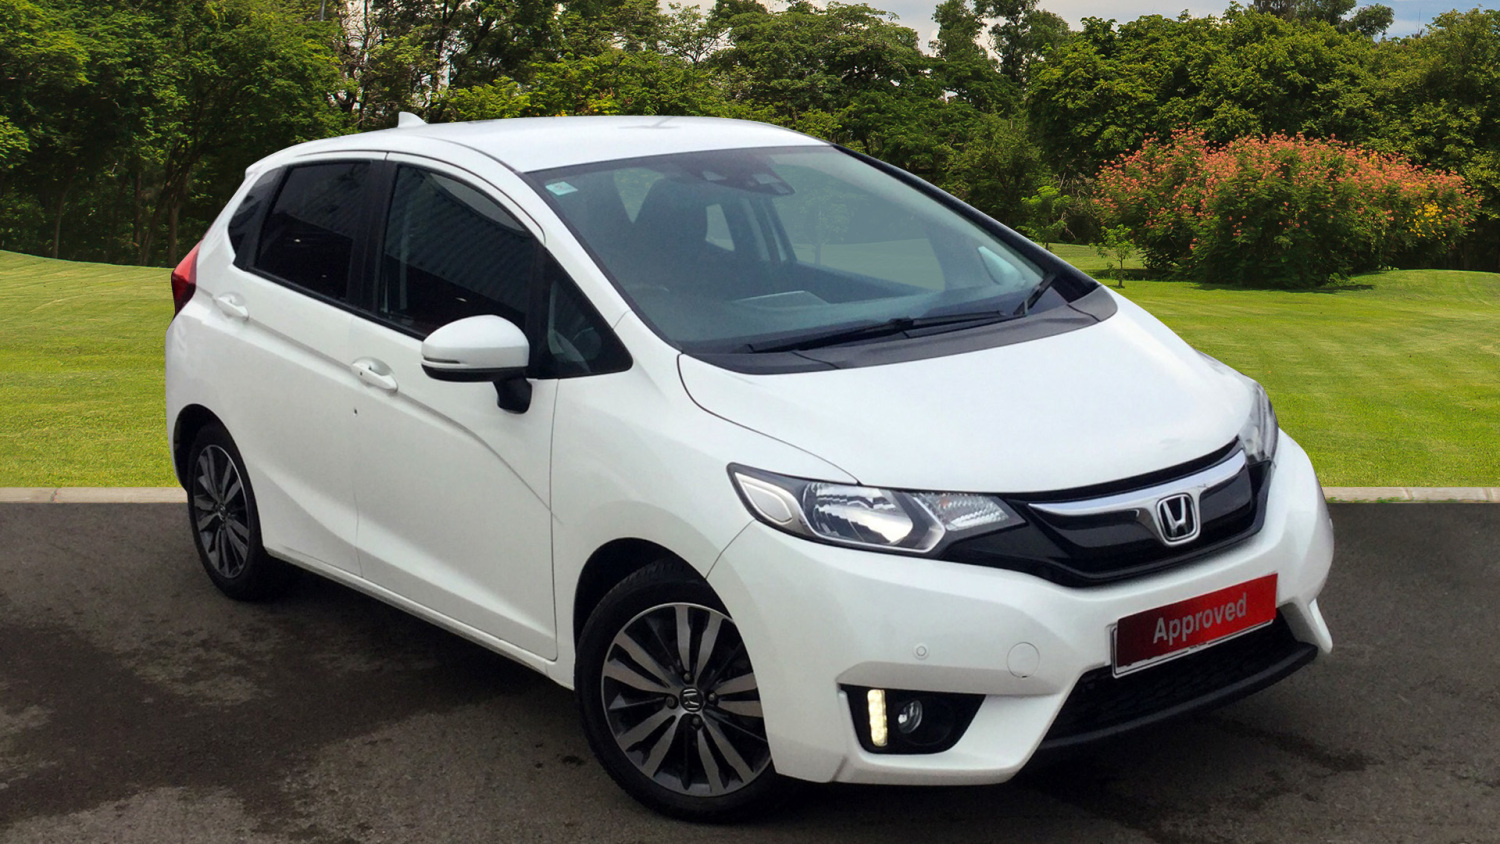 used honda jazz 1 3 ex navi 5dr petrol hatchback for sale vertu honda. Black Bedroom Furniture Sets. Home Design Ideas